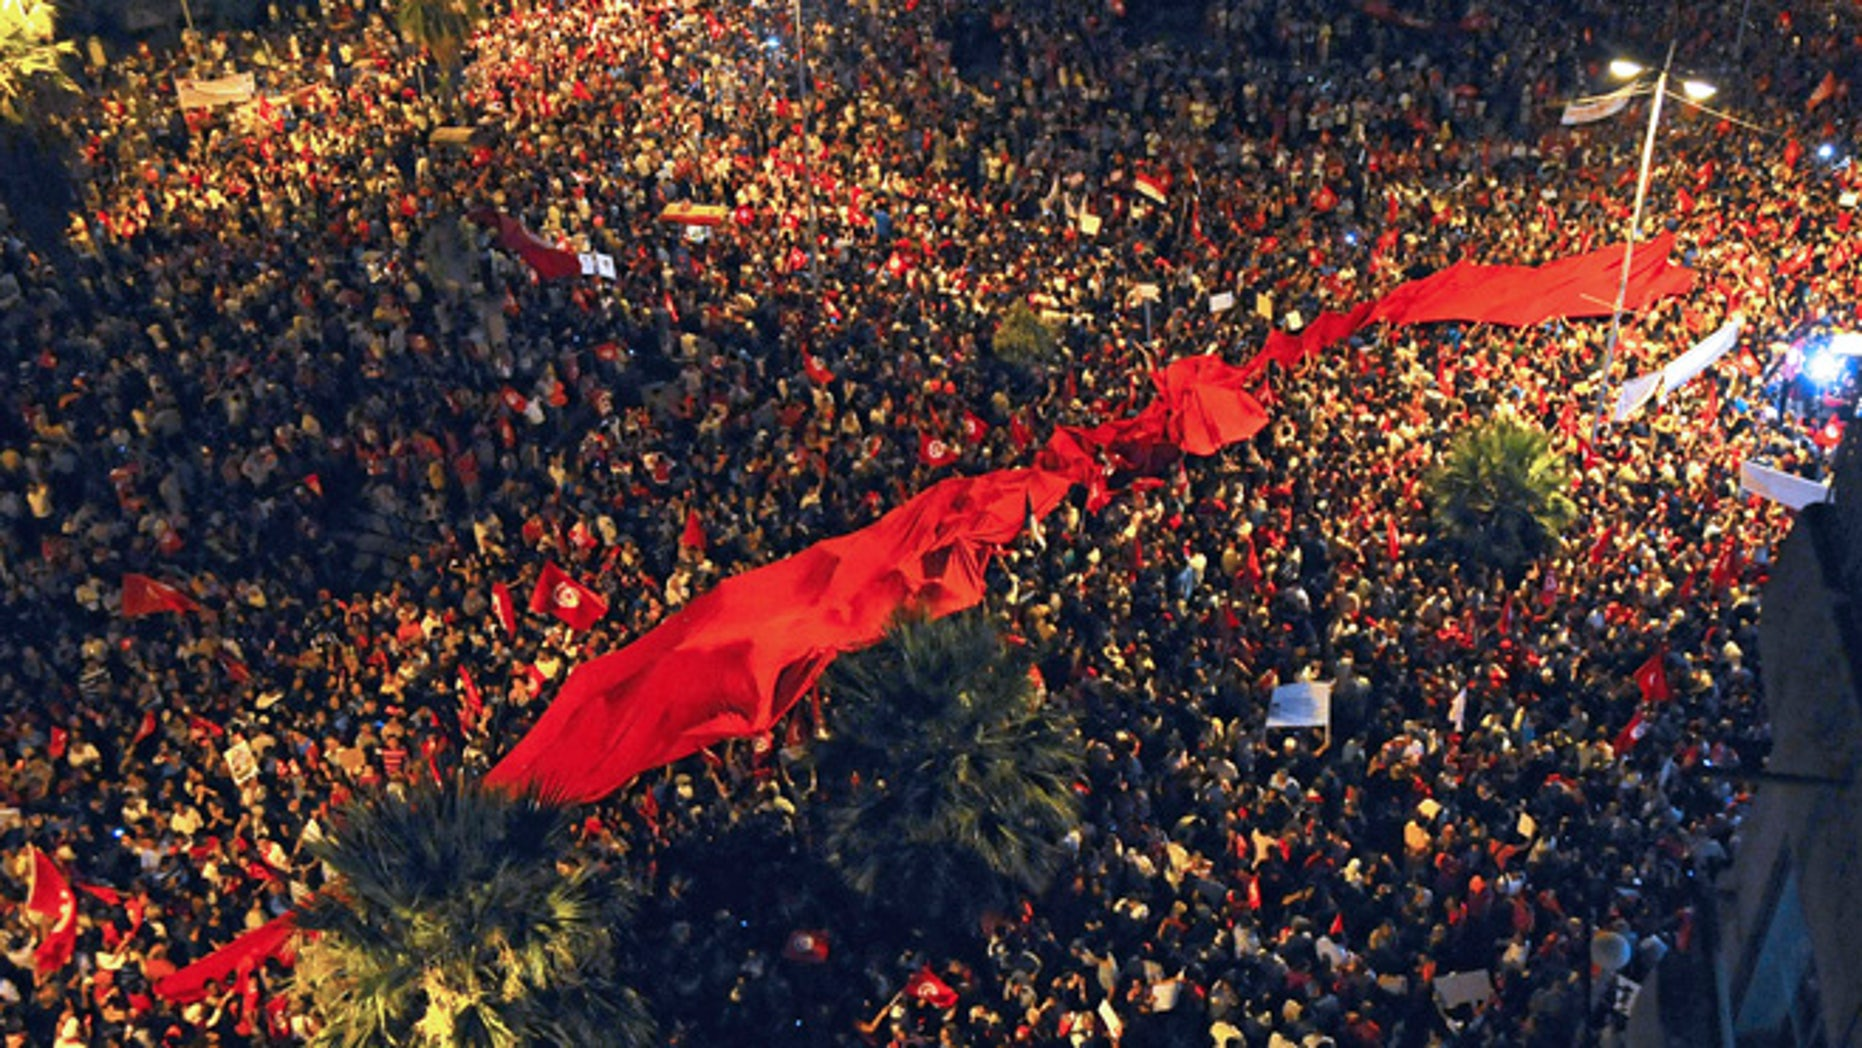 Aug. 6, 2013: People demonstrate against Tunisia's Islamist-led government in Tunis.